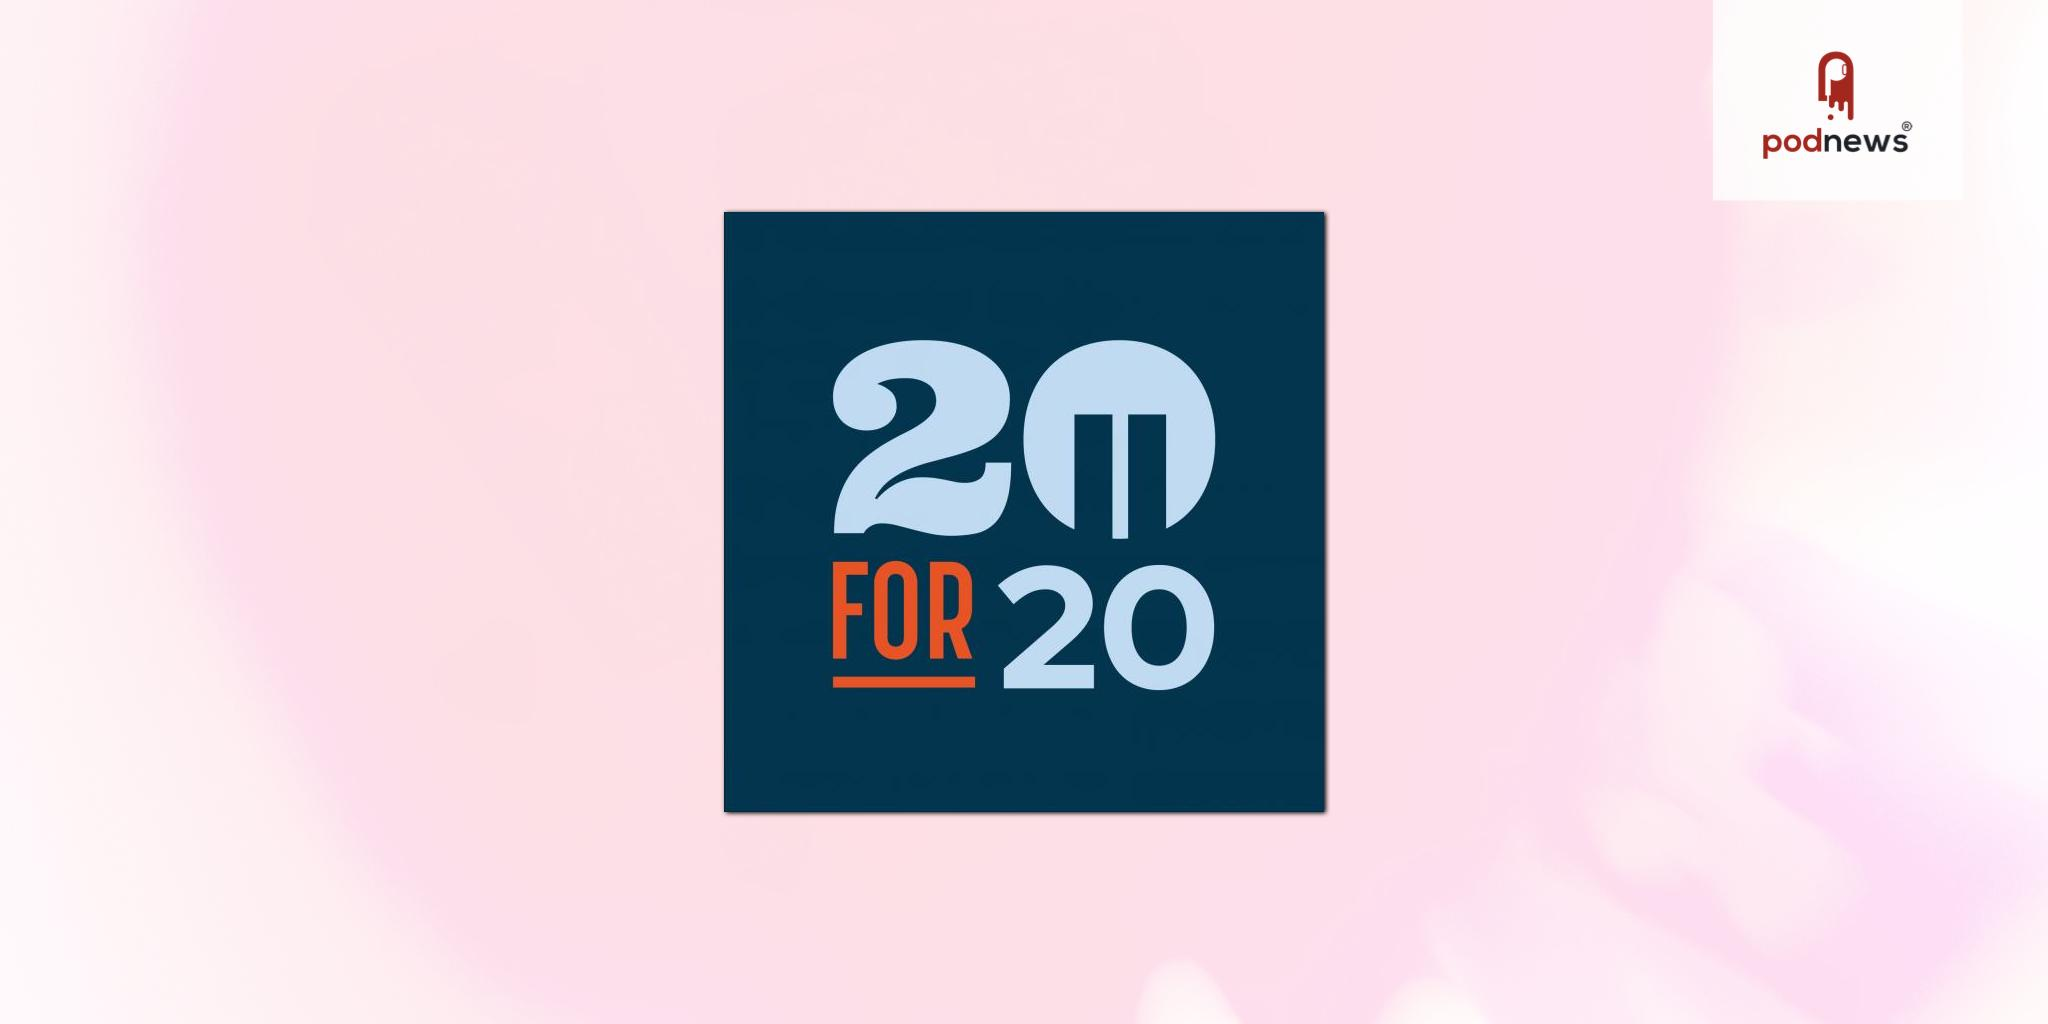 Iron Light Labs Launches '20 for 20' Podcast Presenting 20 Heroic Stories in the 20 Years Since 9/11